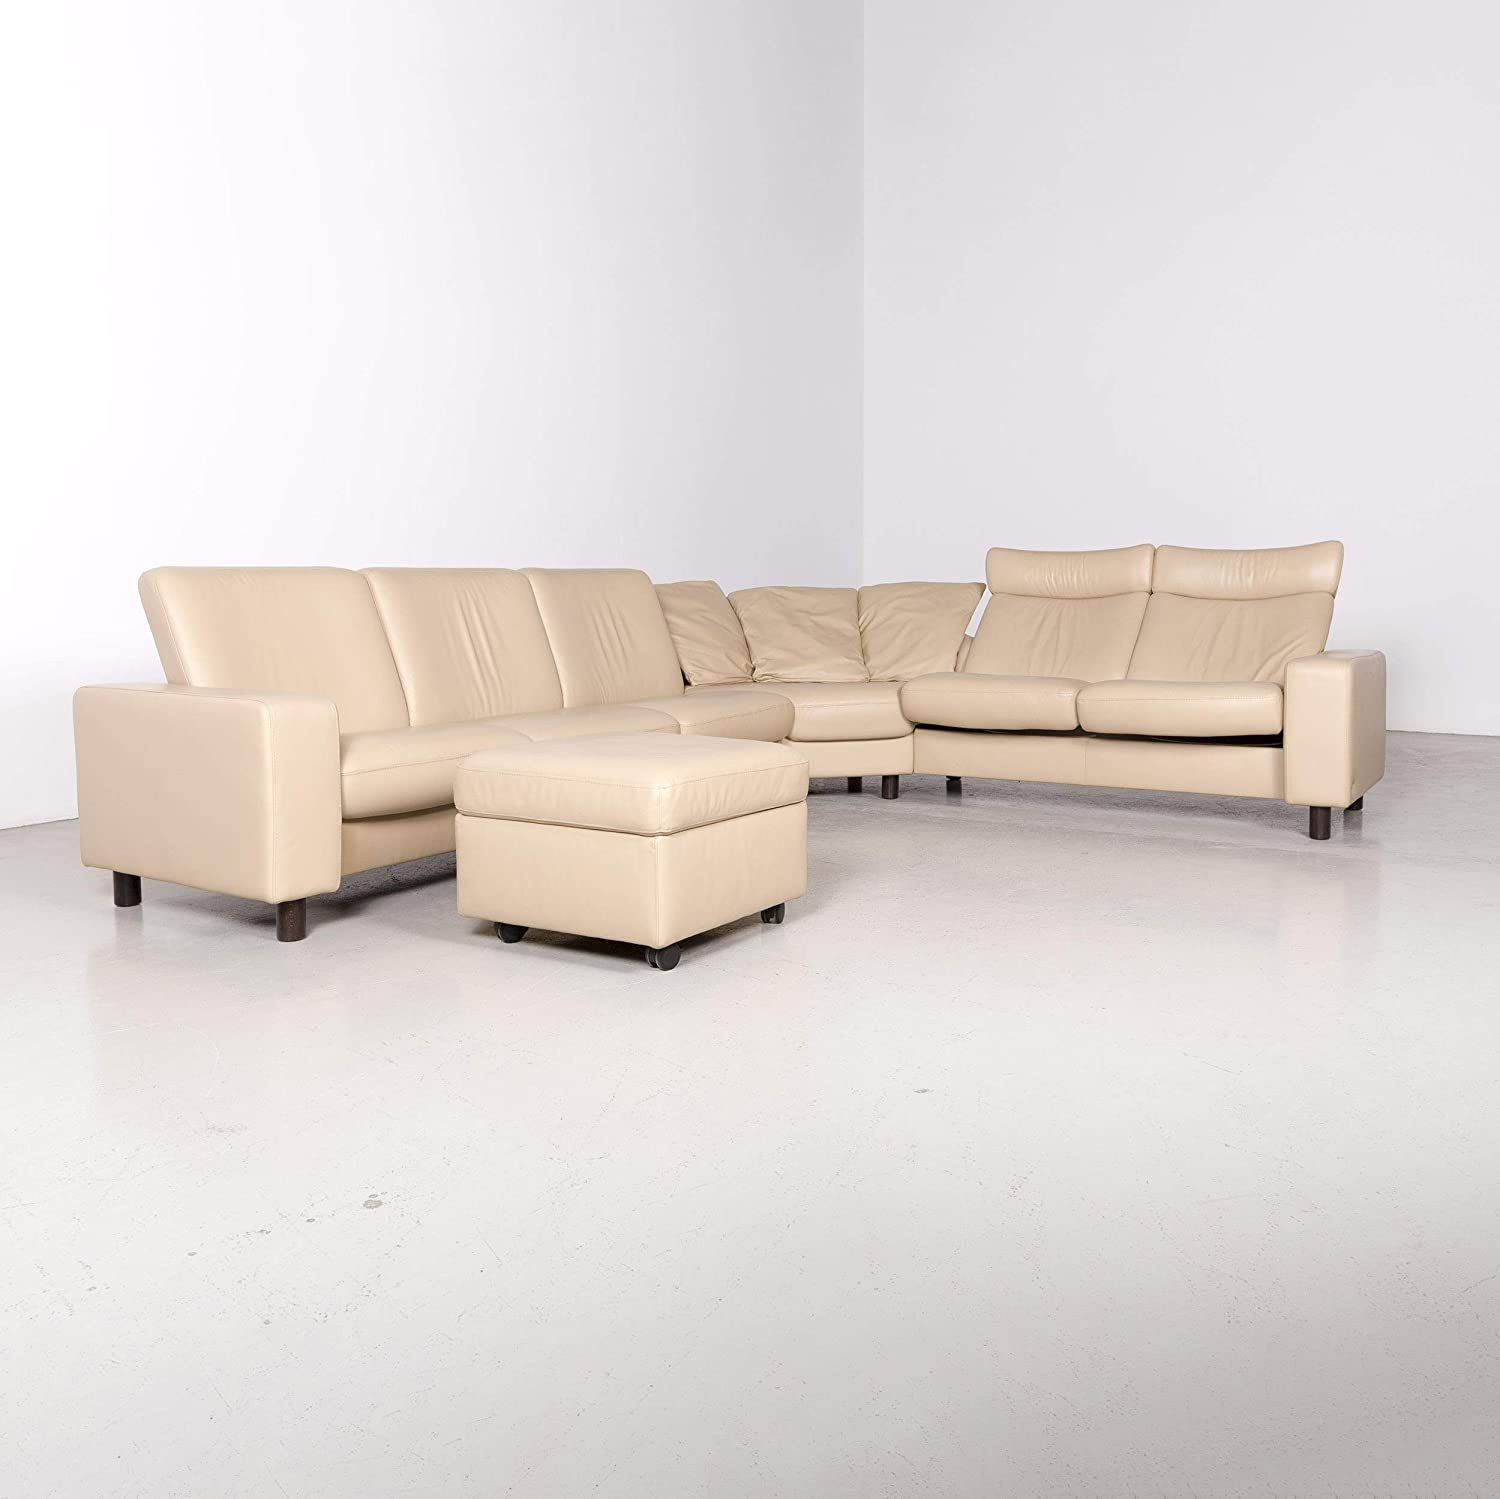 Stressless Arion Designer Leather Corner Sofa Stool Set ...